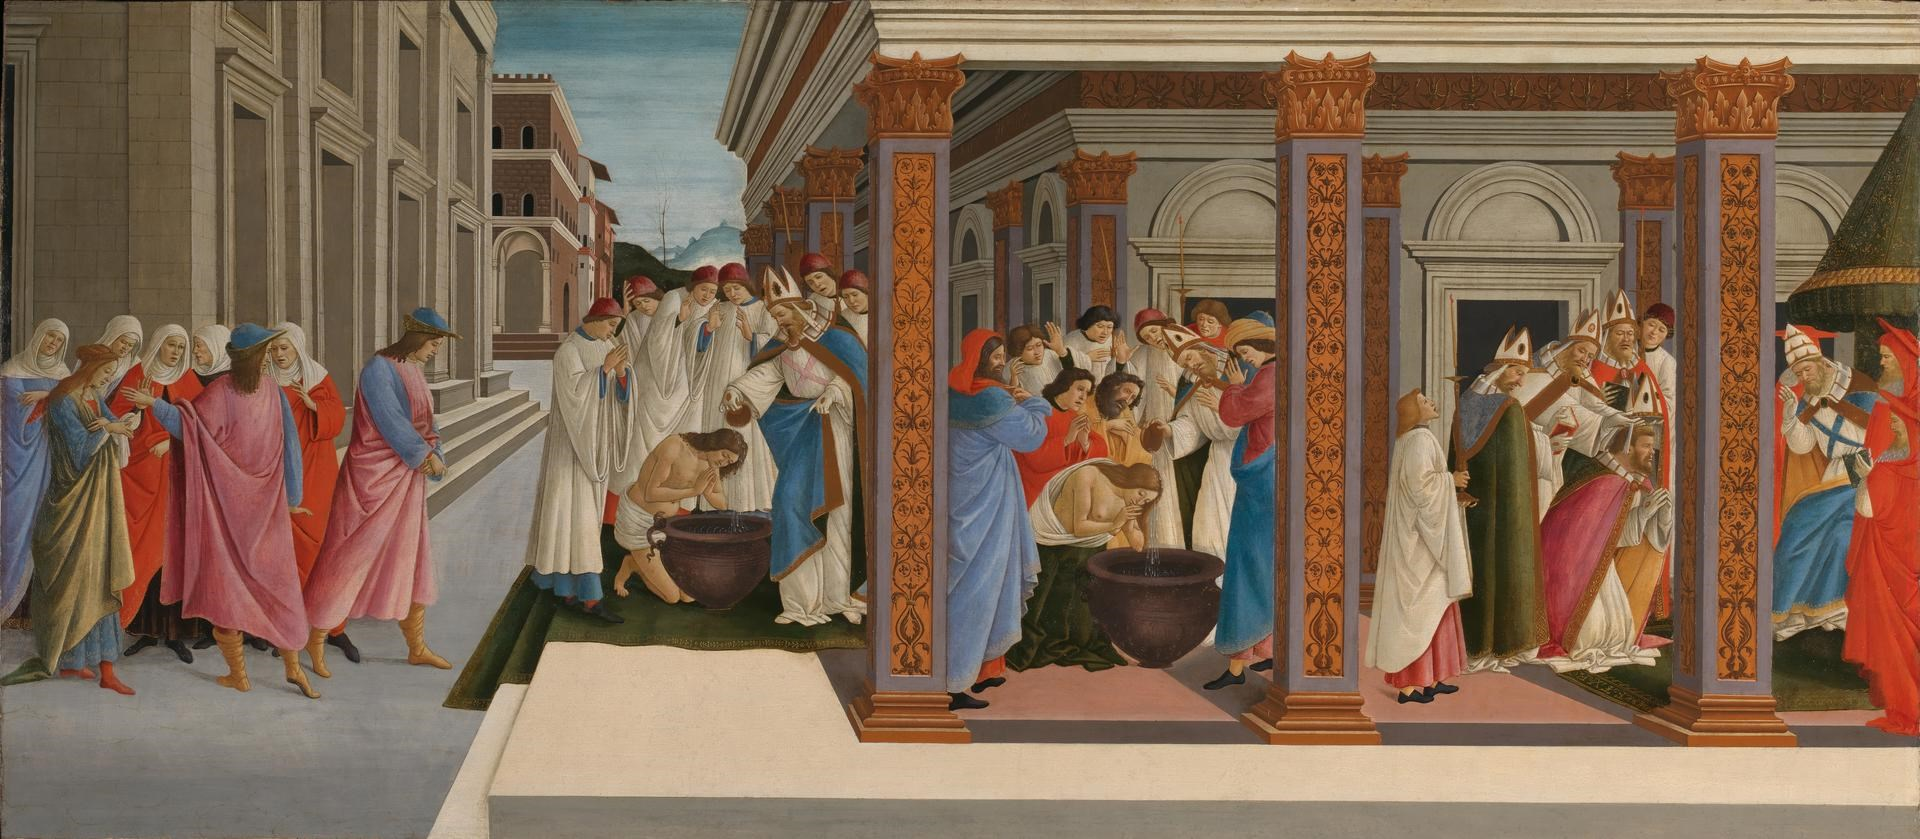 Four Scenes from the Early Life of Saint Zenobius by Sandro Botticelli